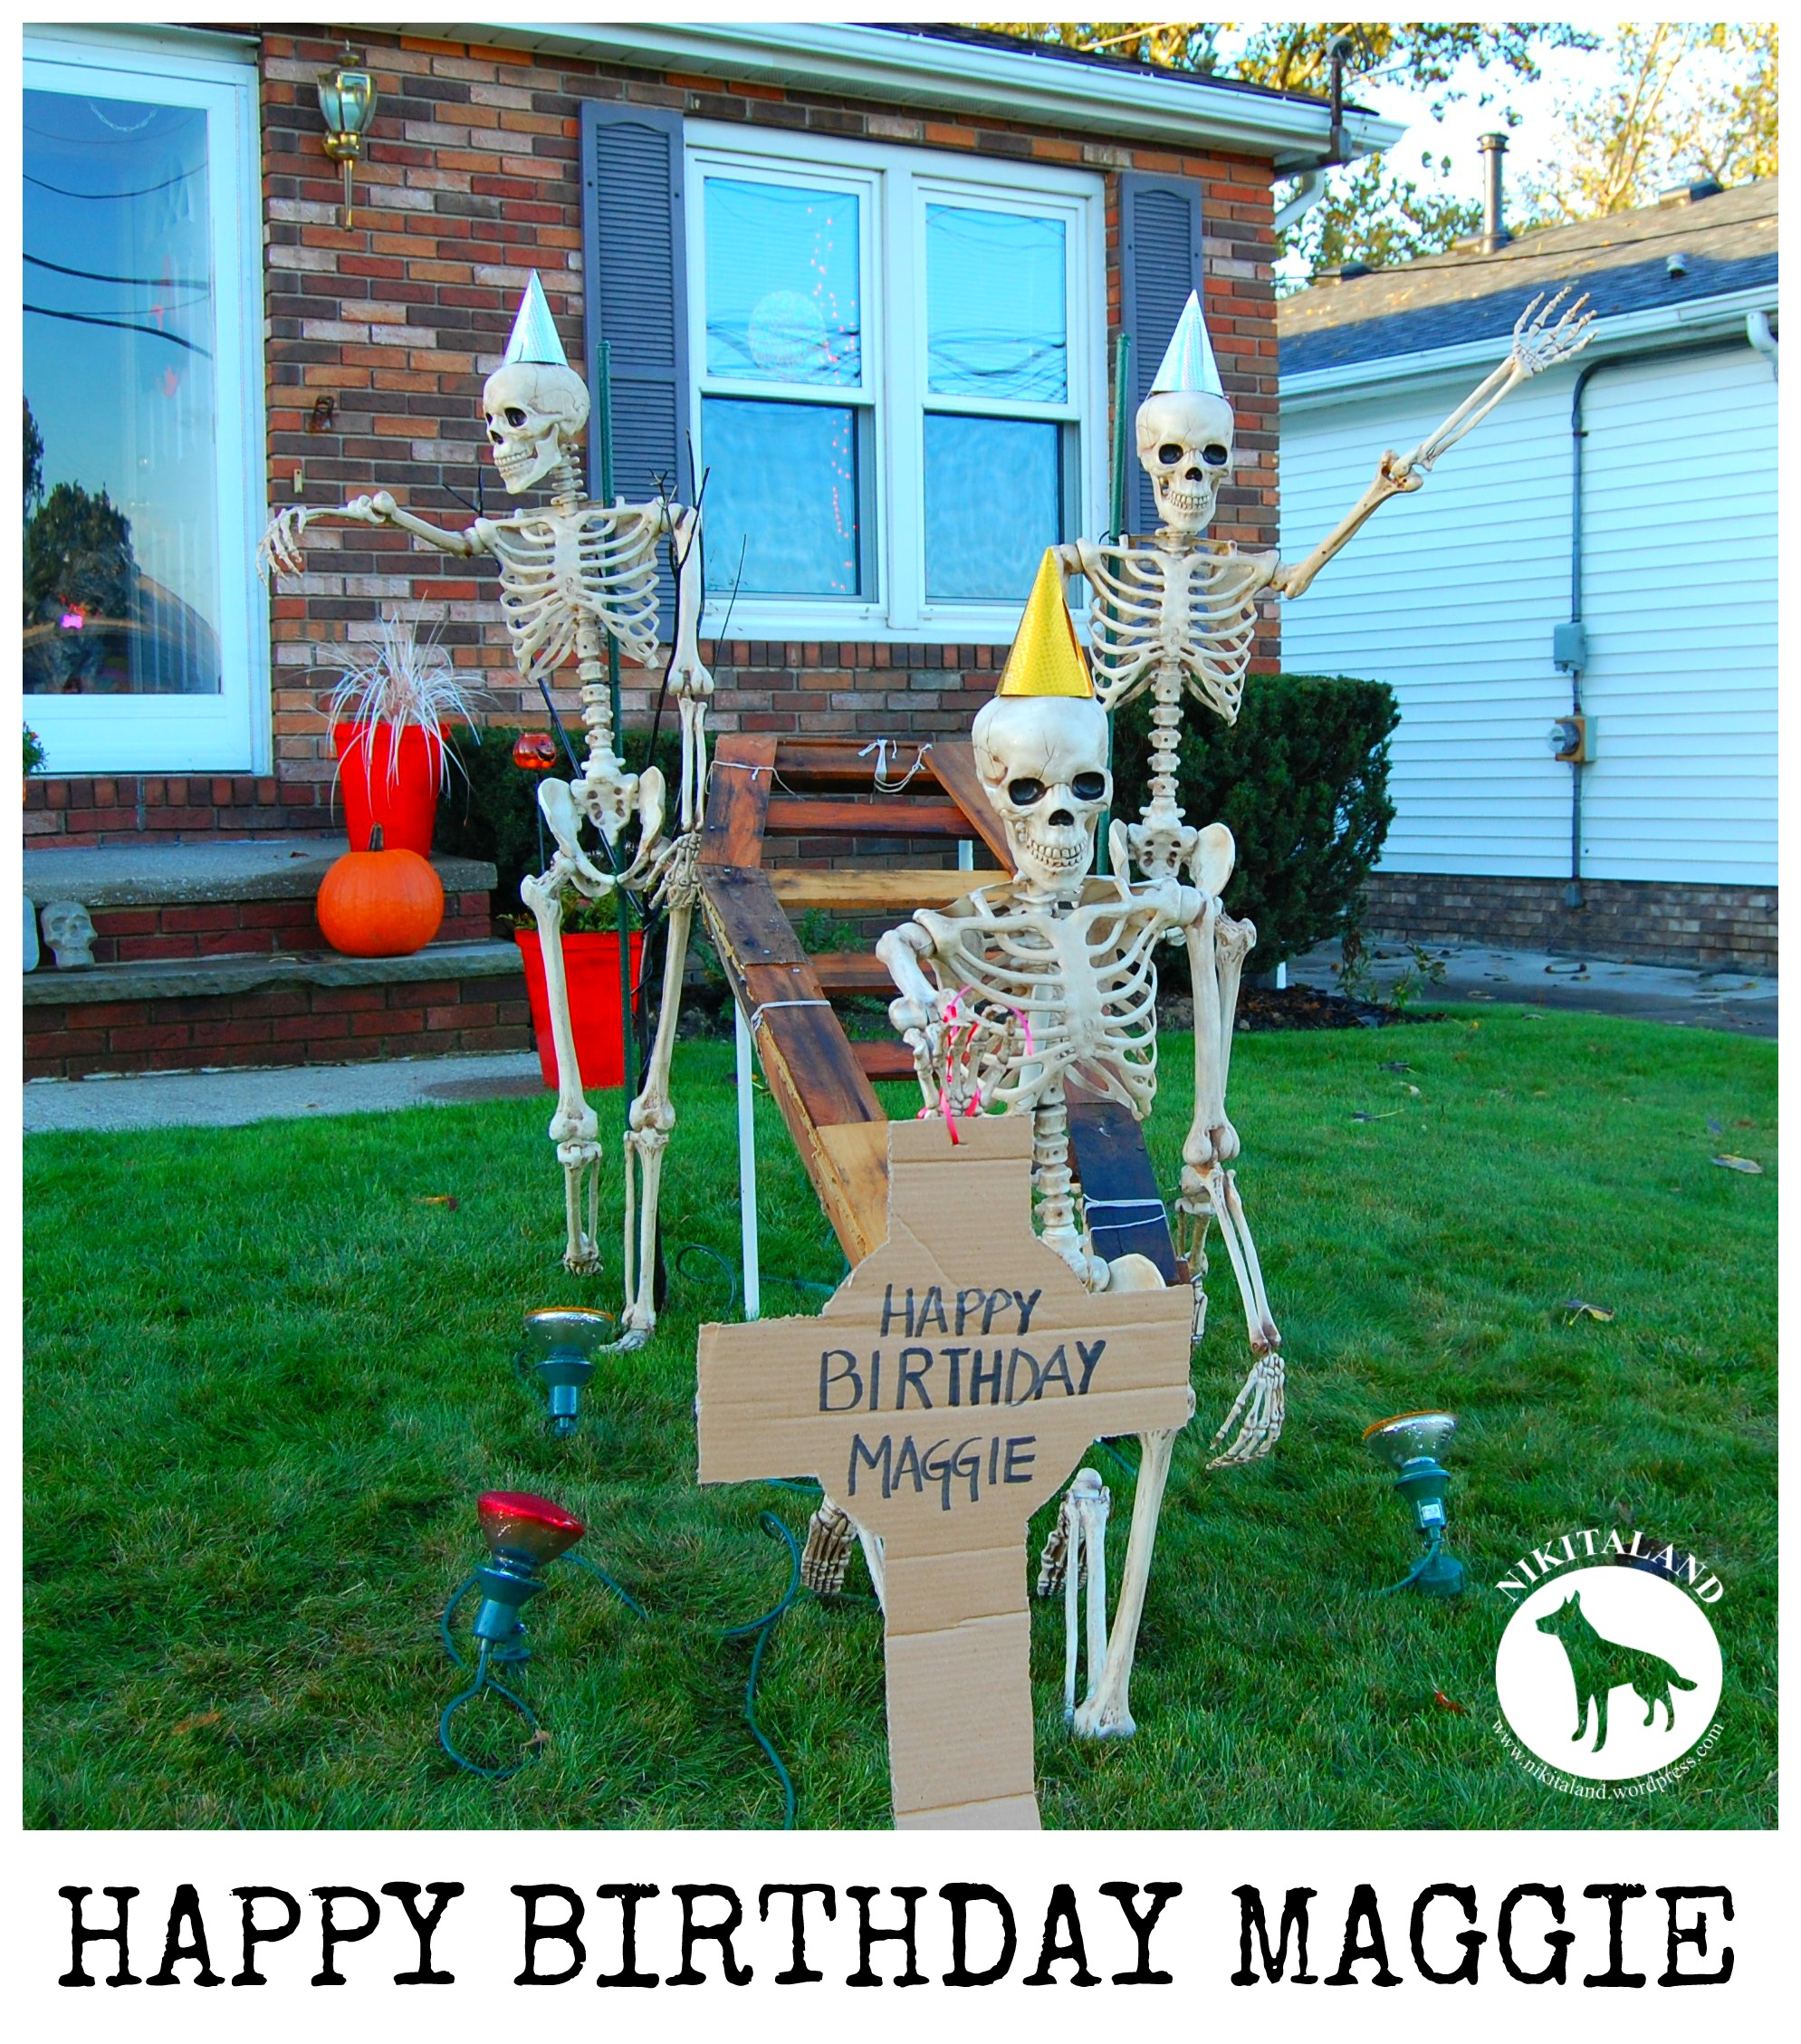 Happy Birthday Maggie! | Nikitaland